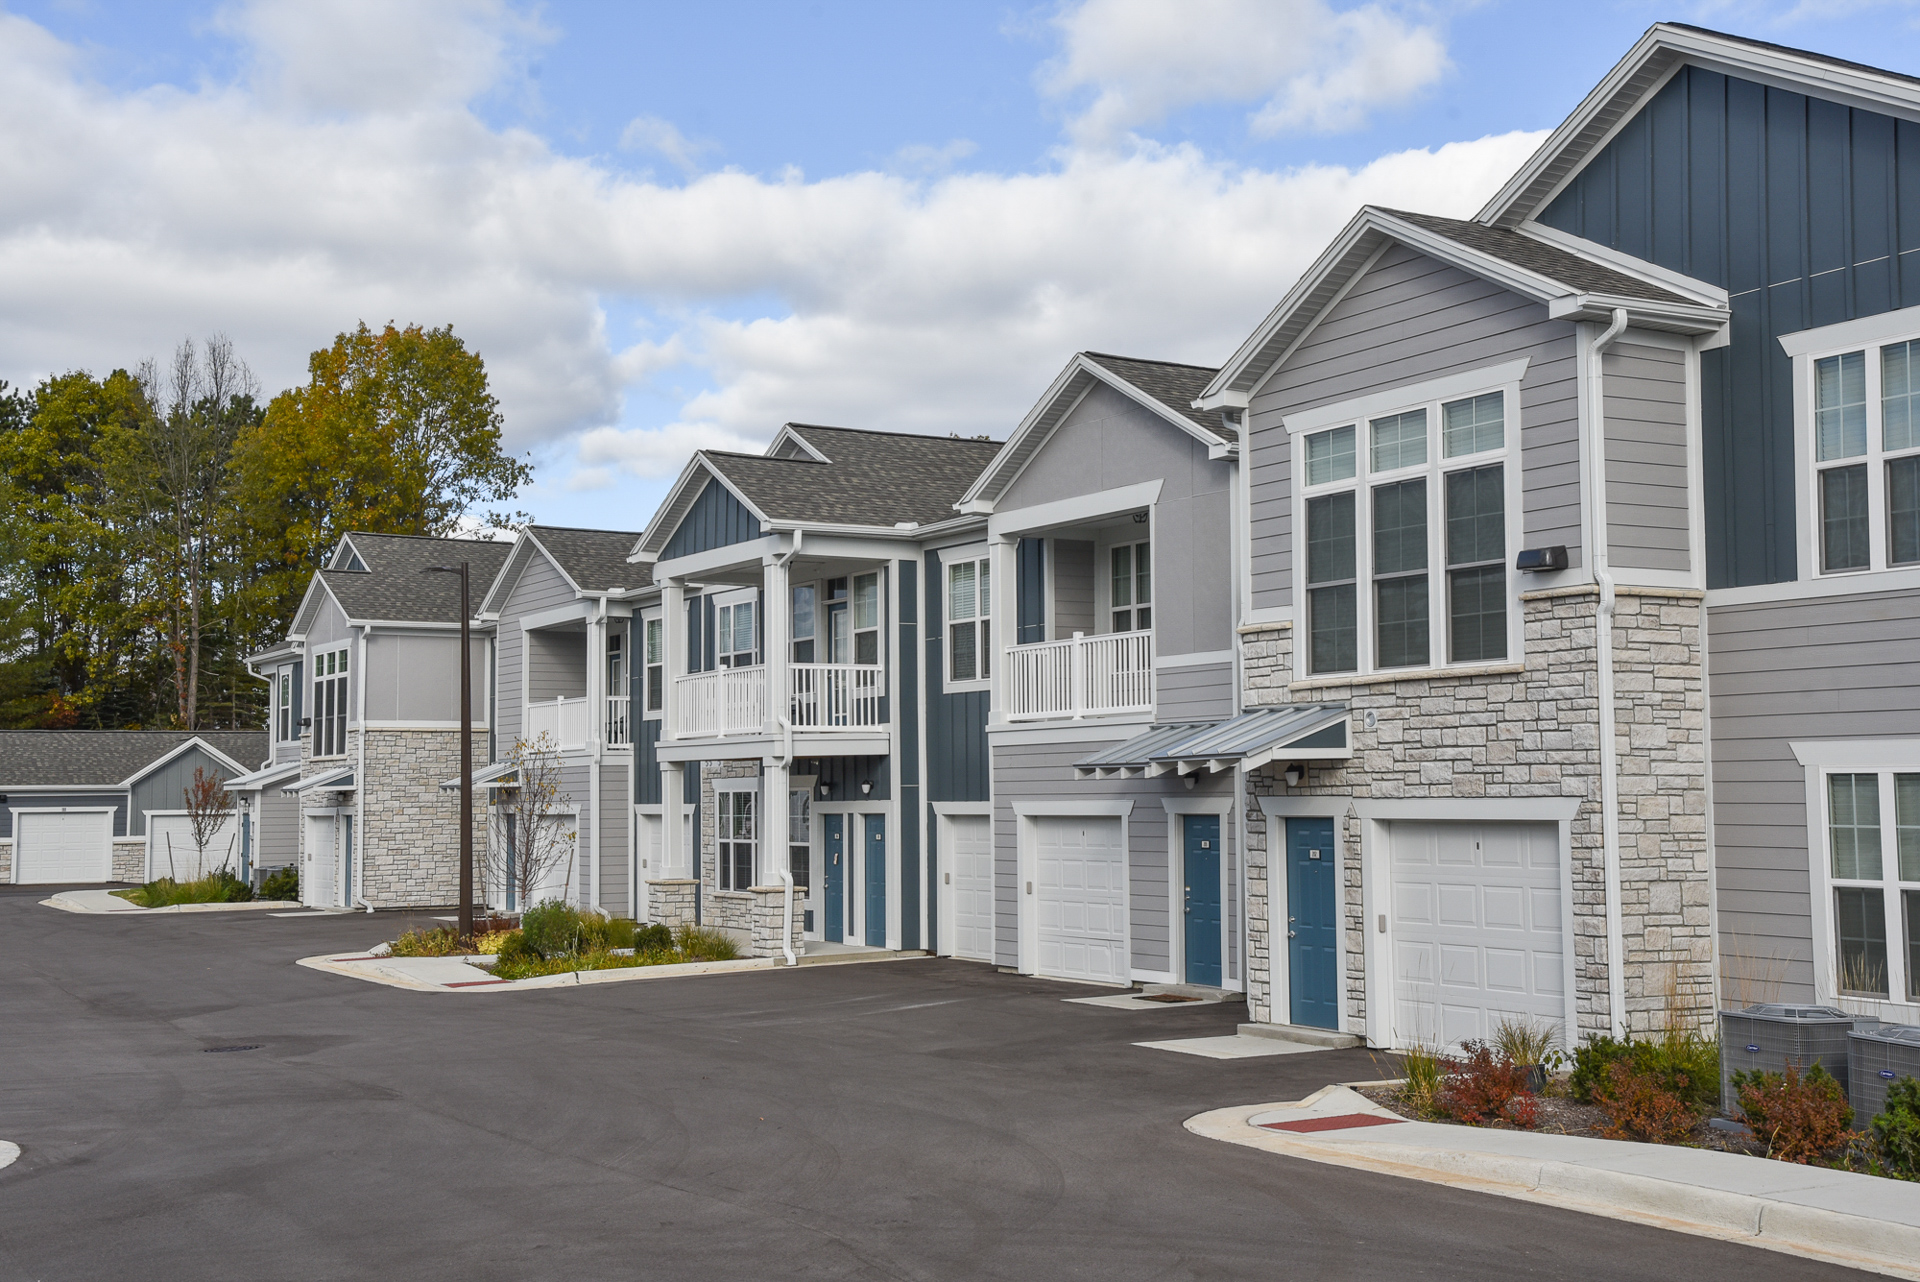 Springs at Knapp's Crossing apartments exteriors with attached garages